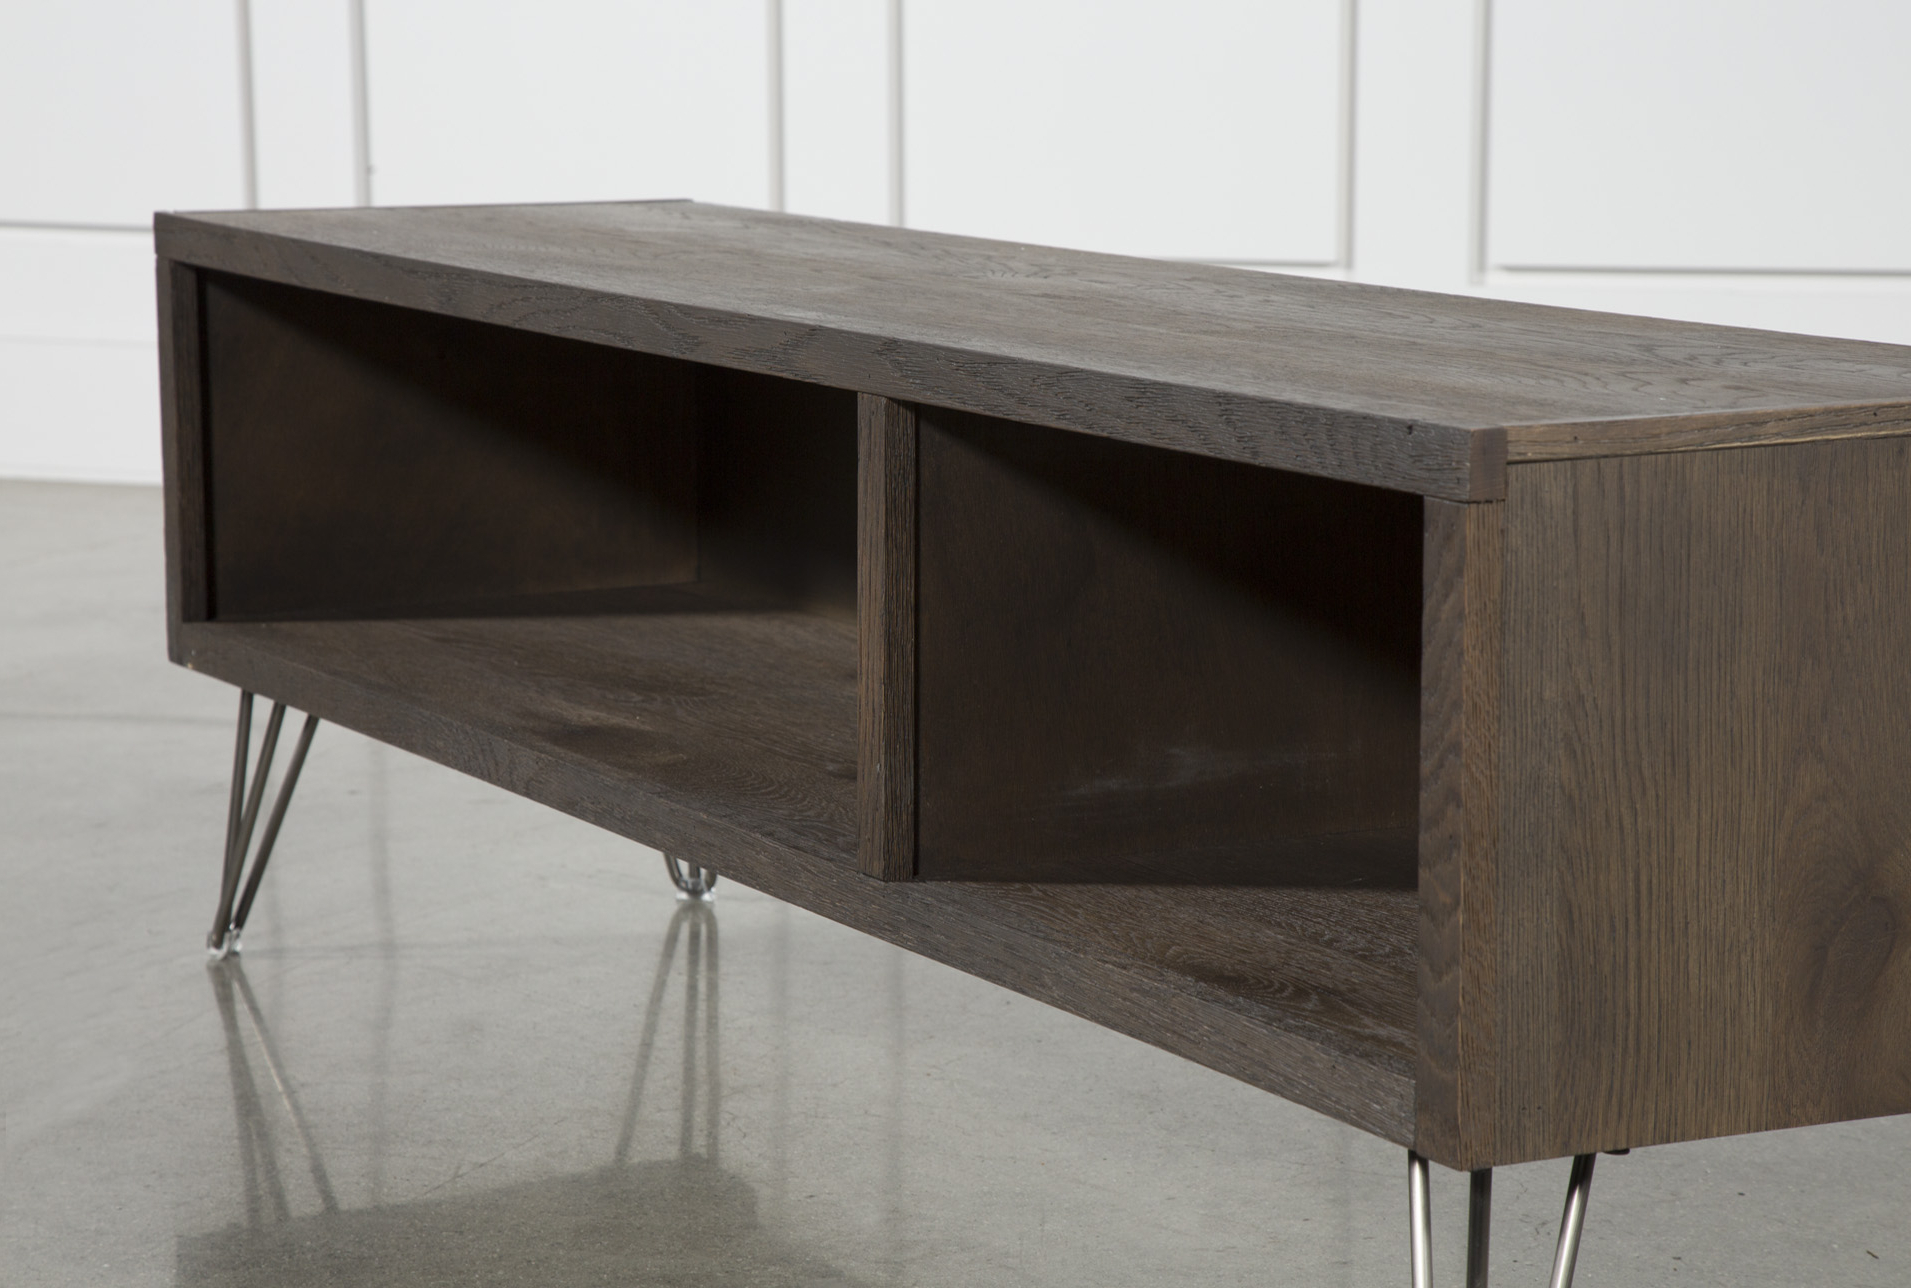 Melrose Barnhouse Brown 65 Inch Lowboy Tv Stand (View 2 of 8)